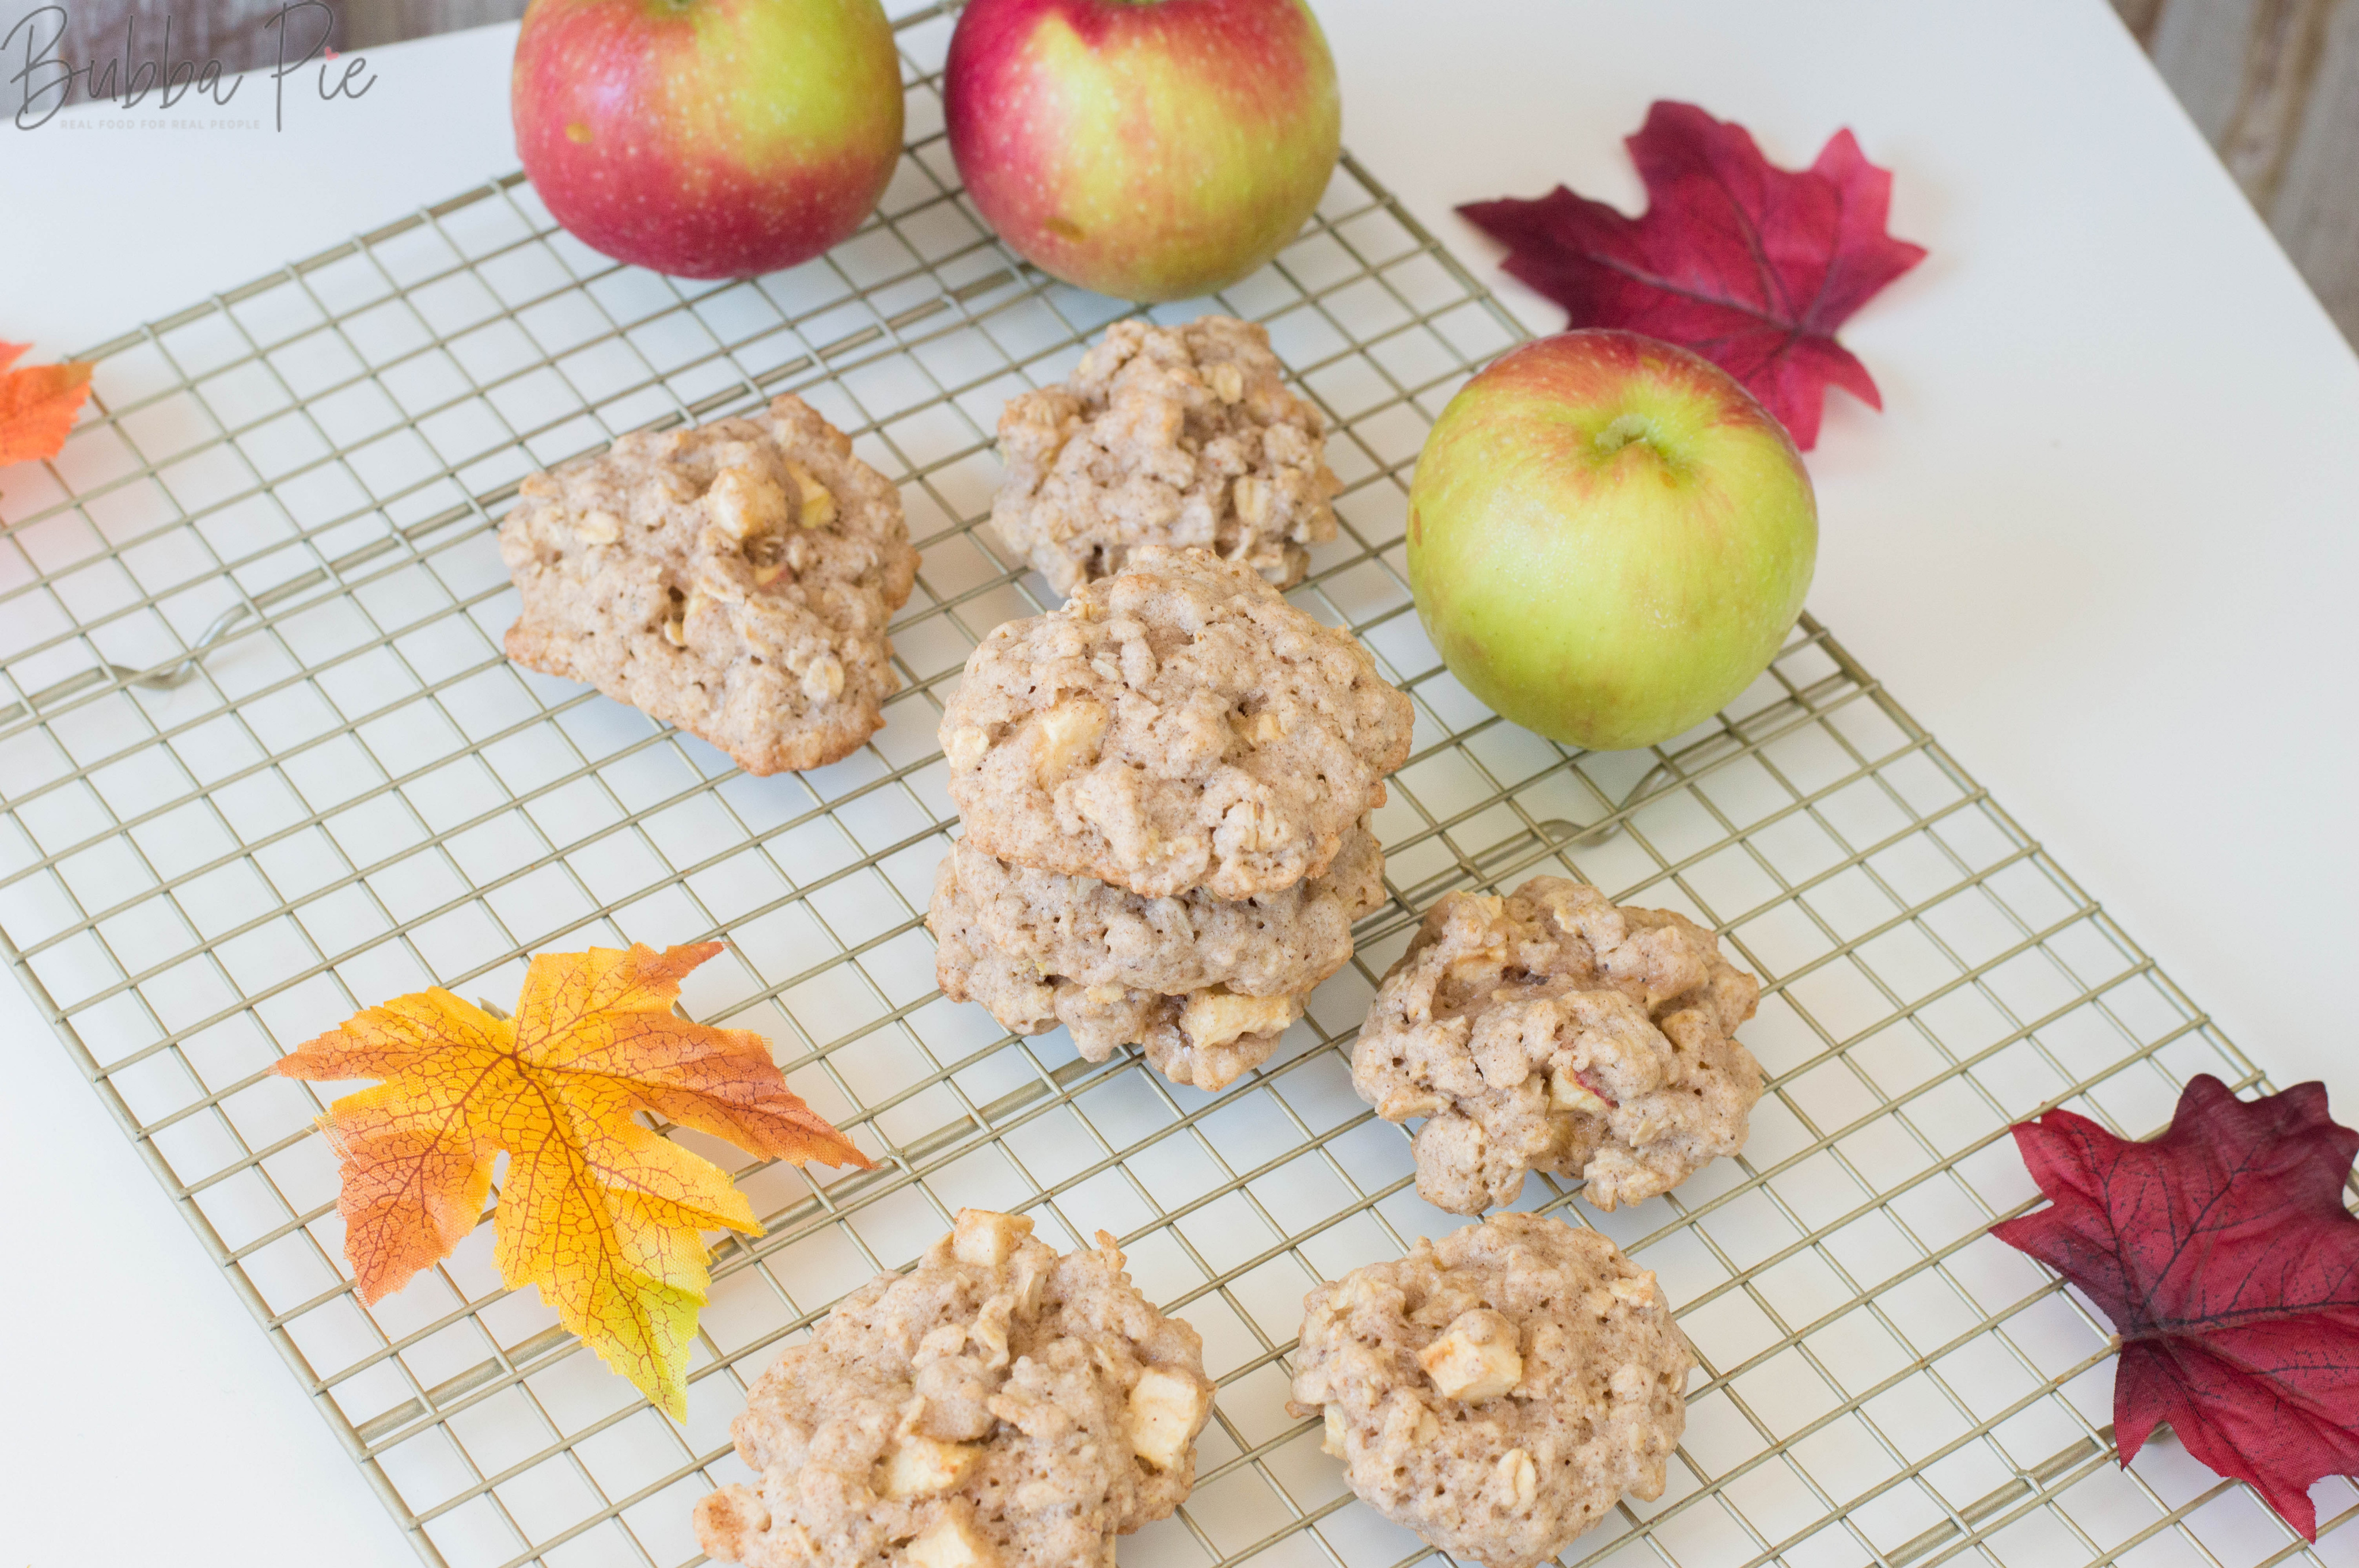 Apple Oatmeal Cookies Recipe is the perfect fall recipe